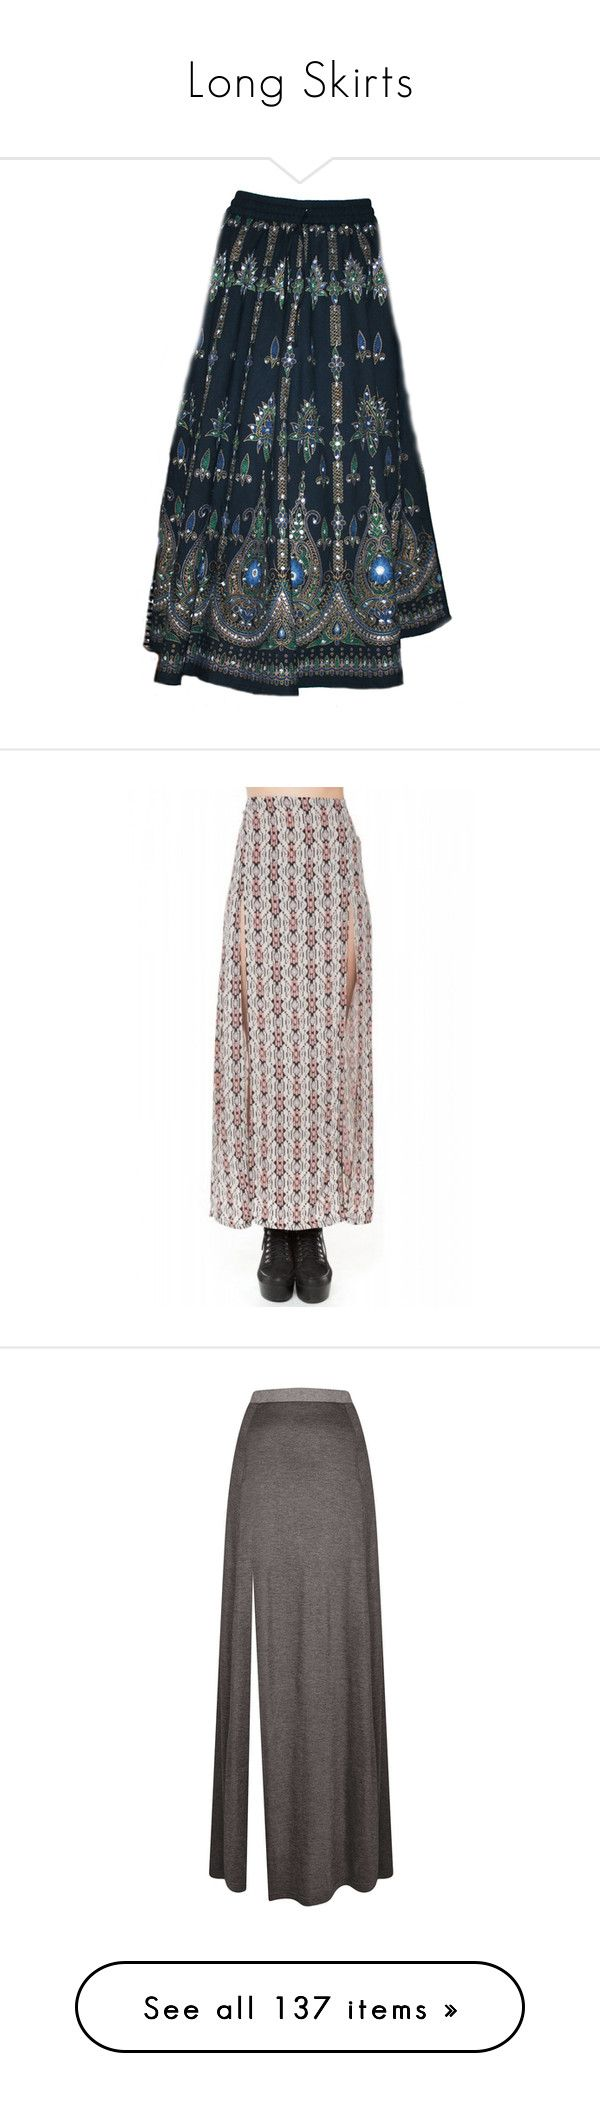 """""""Long Skirts"""" by alejandramalagon ❤ liked on Polyvore featuring skirts, bottoms, bohemian skirts, sequin skirt, long boho skirts, long sequin skirt, sequin maxi skirt, brandy melville, brandy melville skirt and saias"""